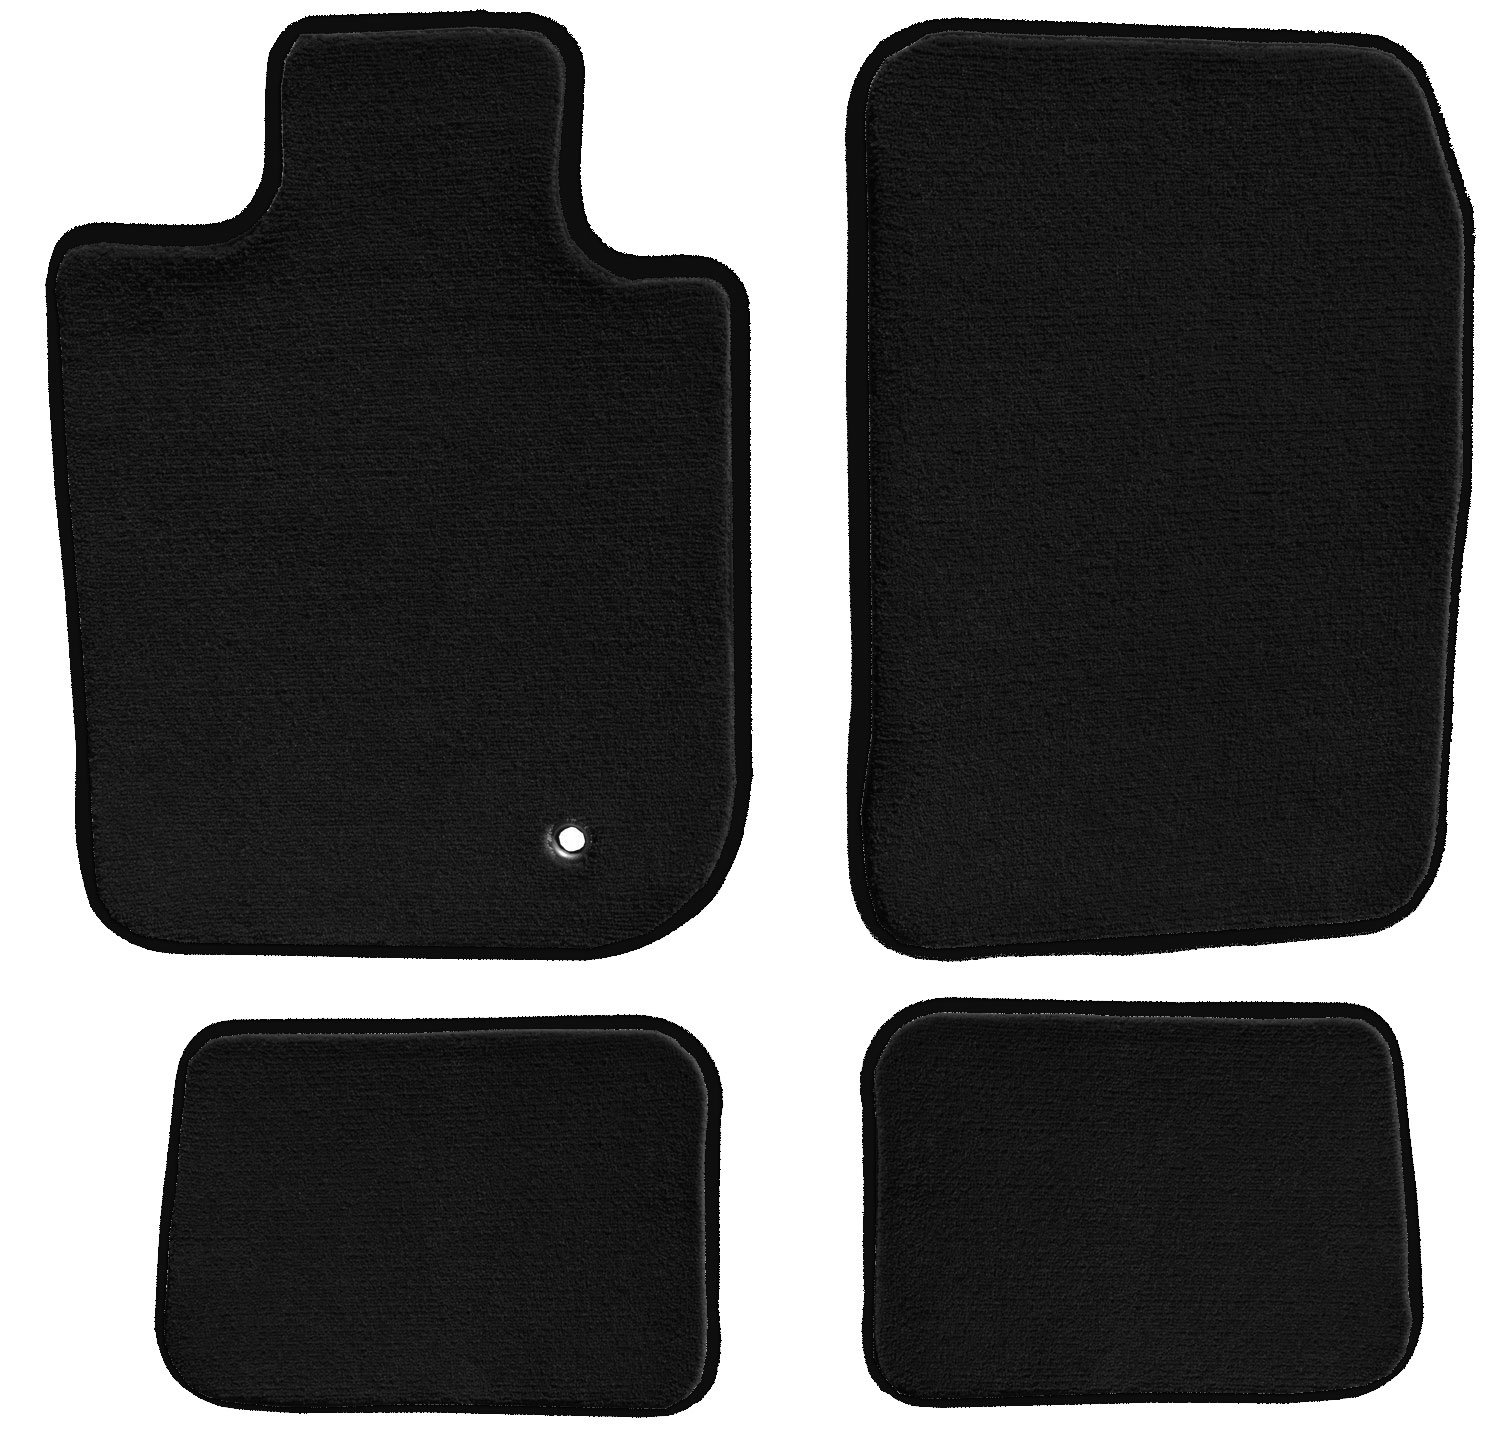 GGBAILEY D60384-S1A-BK-LP Custom Fit Car Mats for 2006 2008 2013 Mercedes-Benz S-Class Sedan Black Loop Driver 2009 2012 2007 2010 2011 Passenger /& Rear Floor